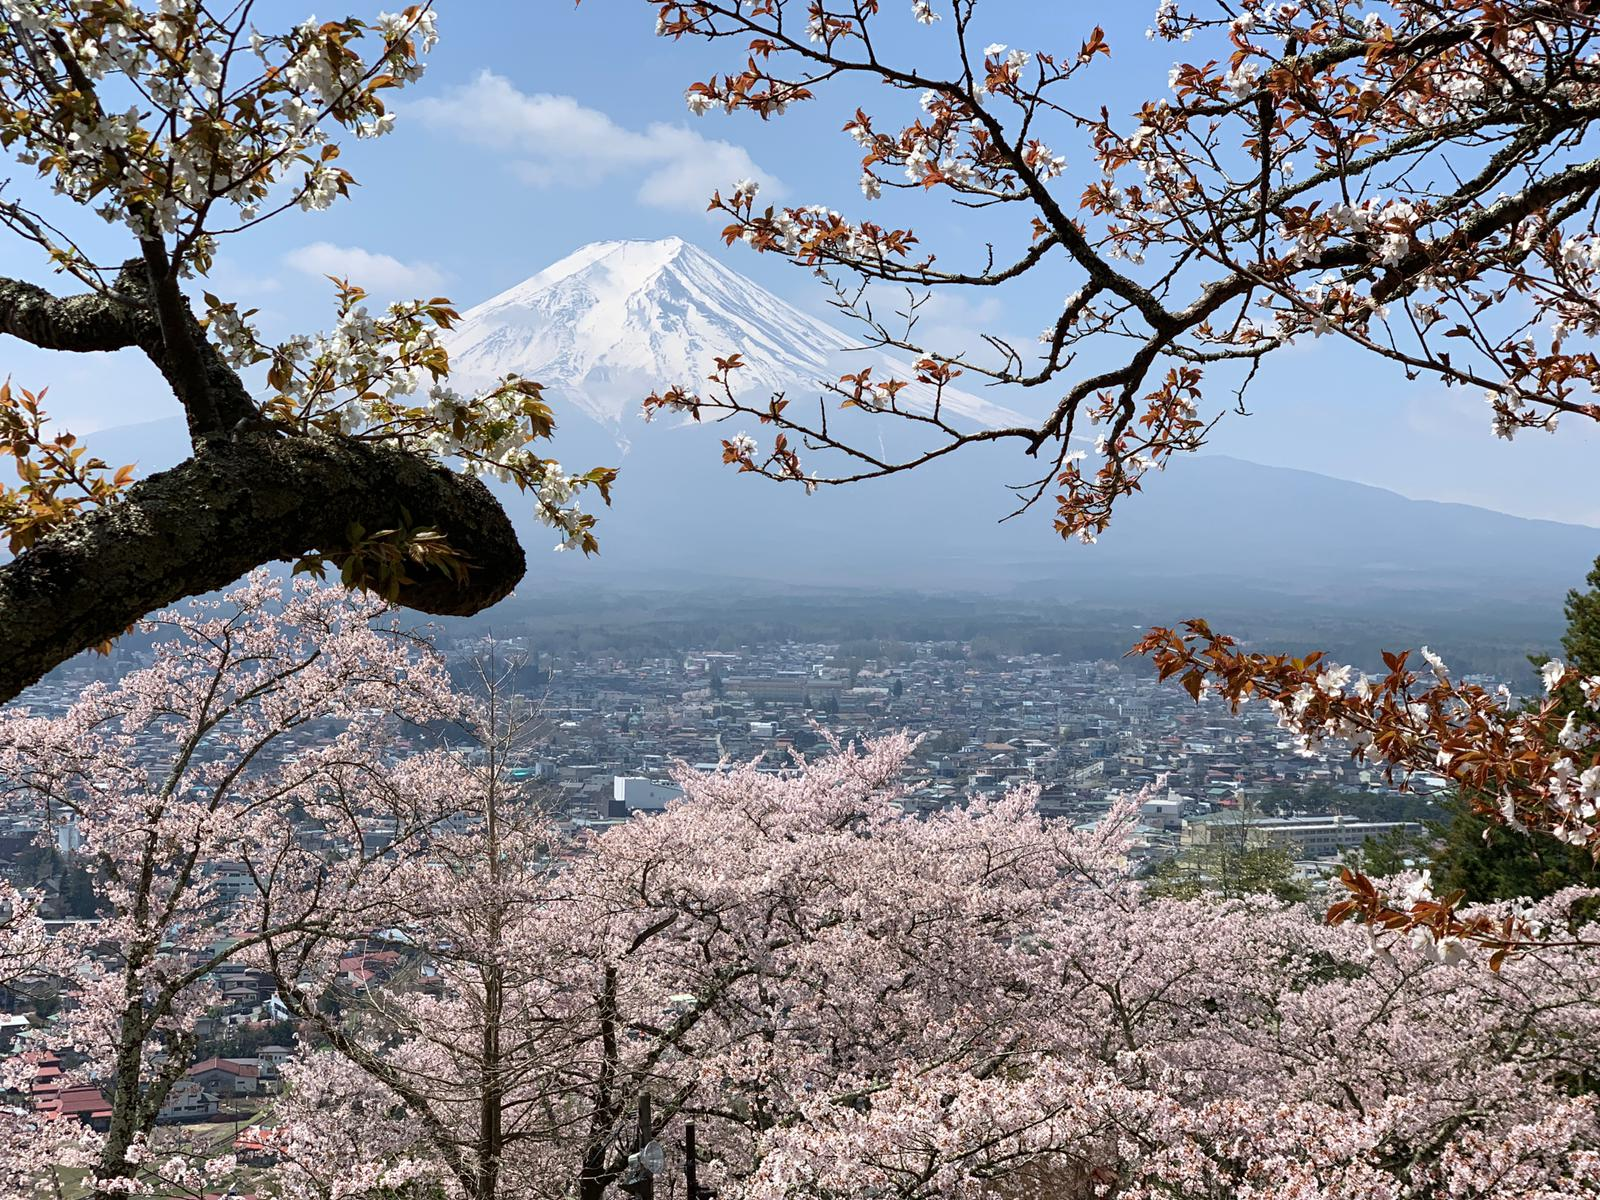 View of snow-covered Mt Fuji and cherry plum blossoms.